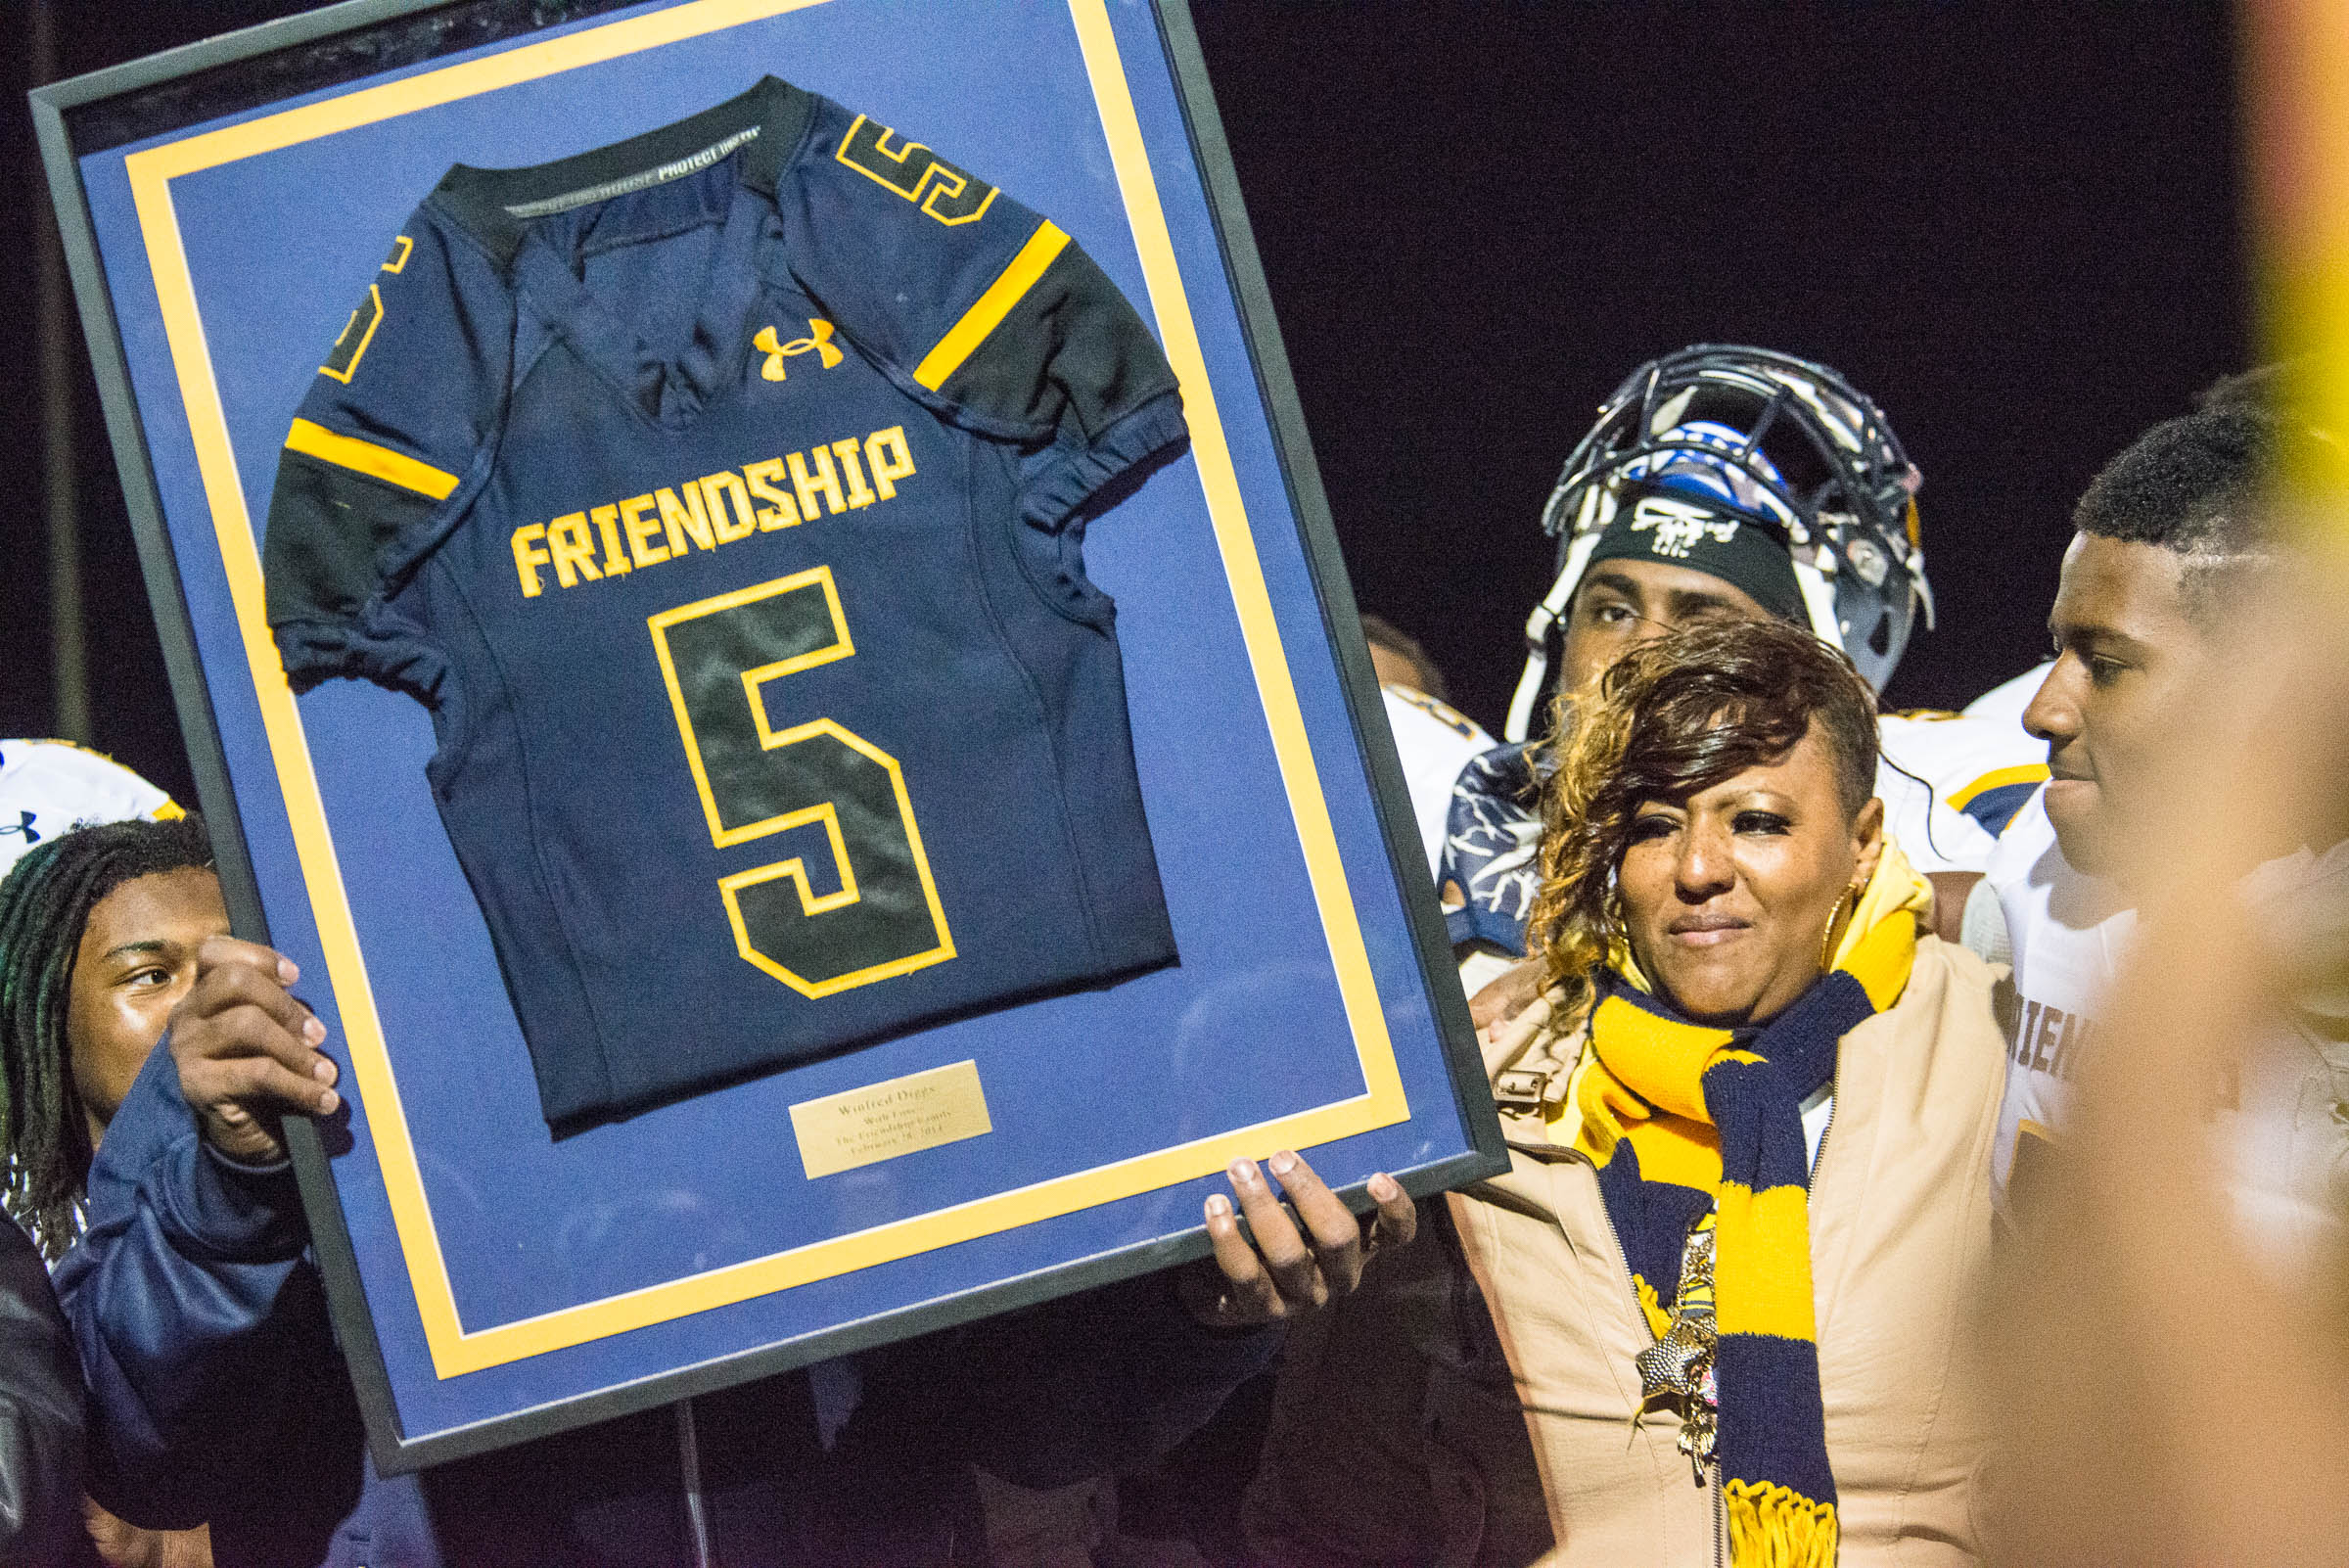 Friendship's football team honors fallen alumni players Winfred Diggs (number 5) and Marquese Meadow (number 57).